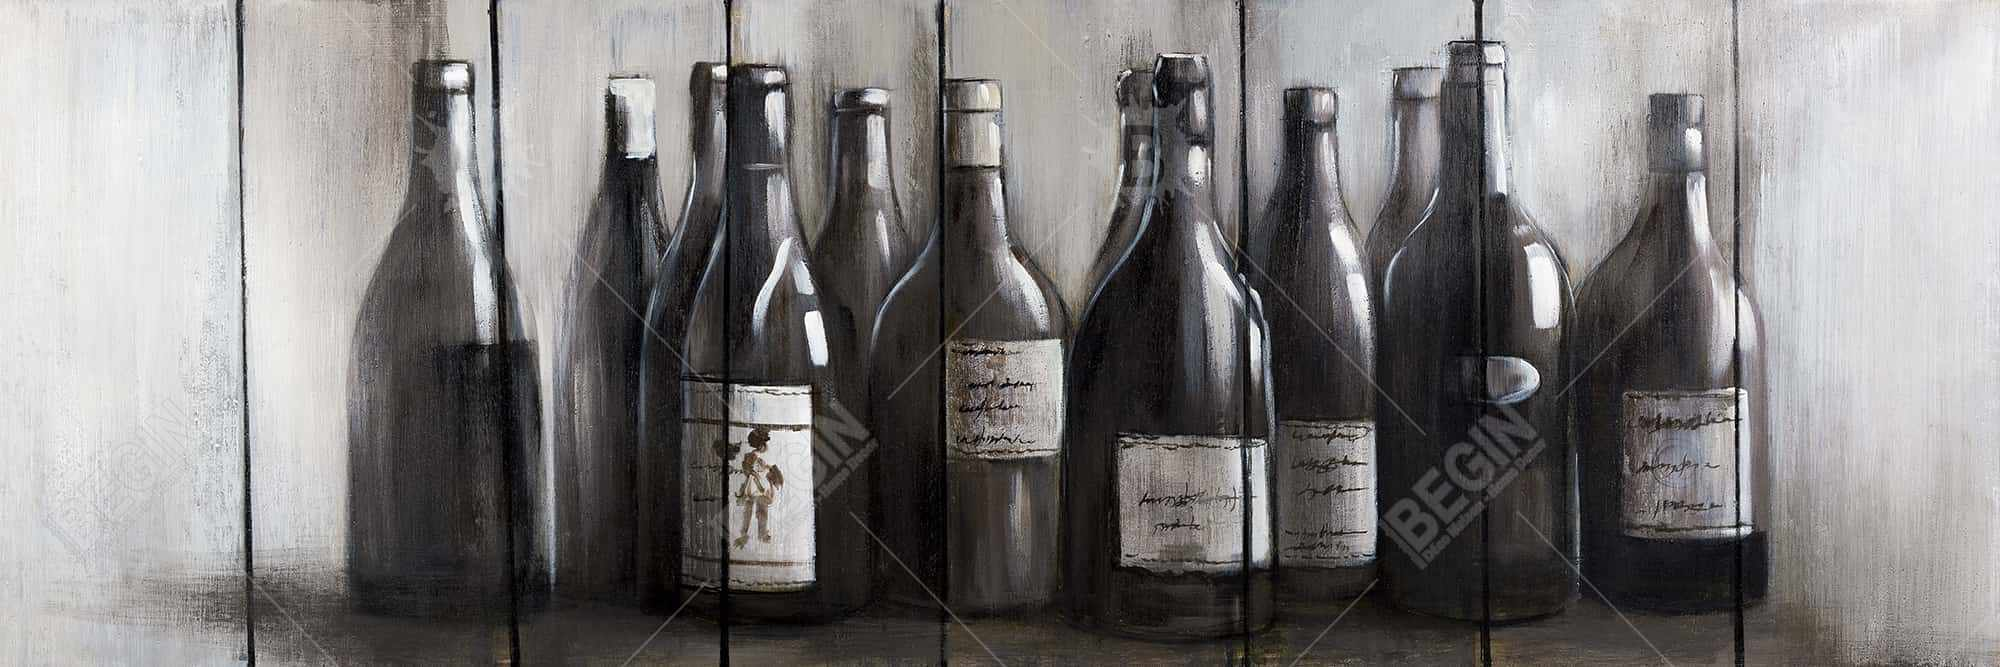 Bottles of wine on wood